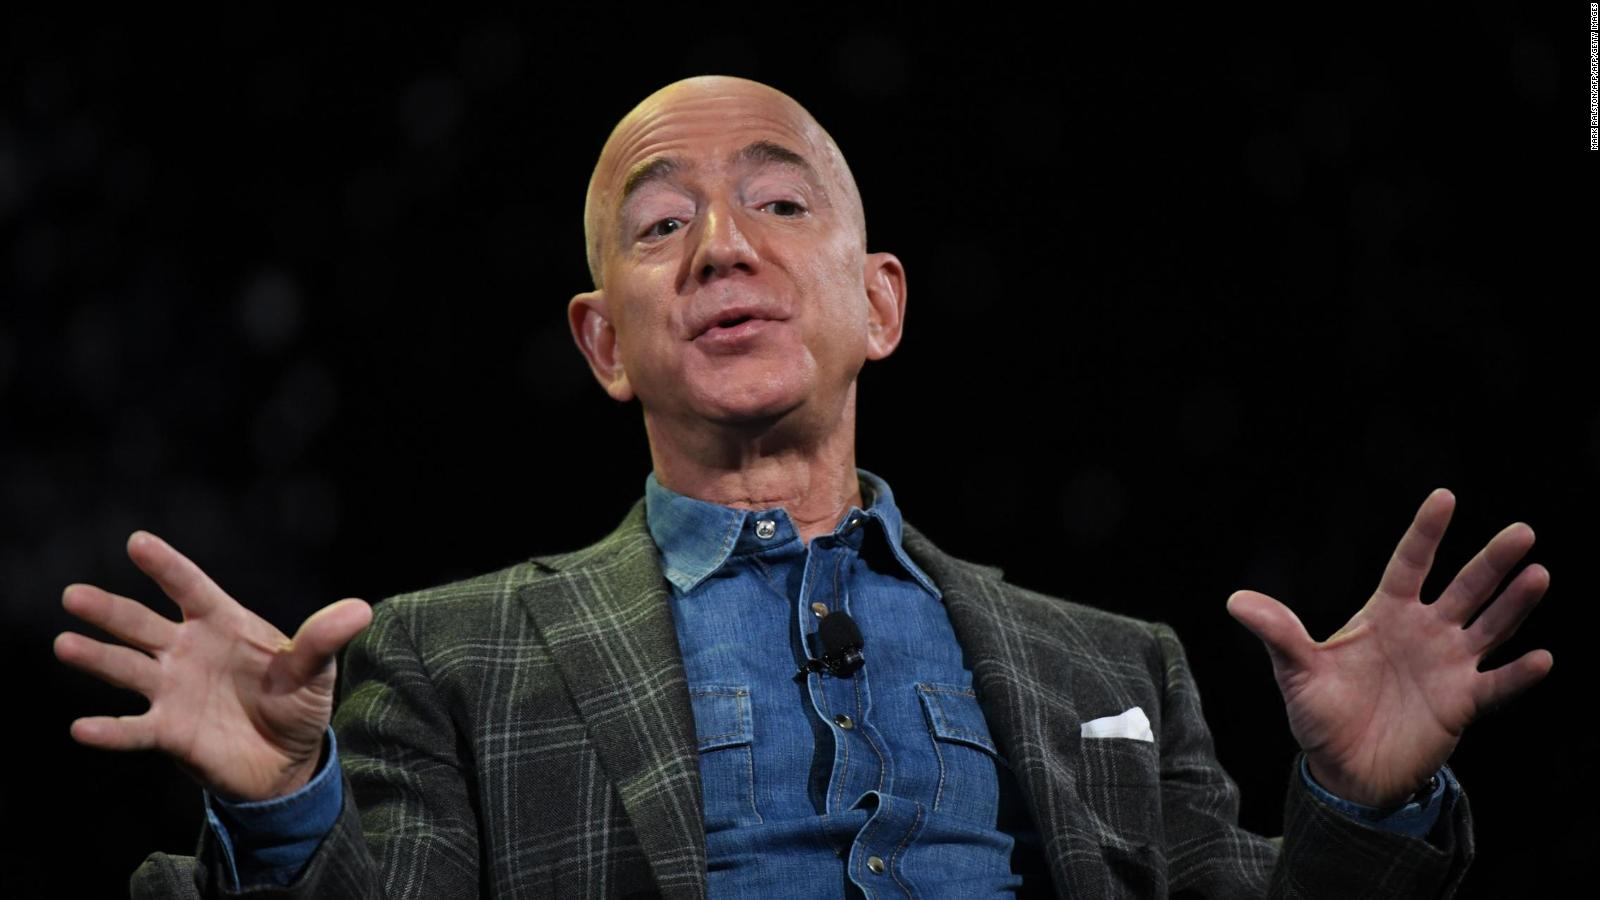 Jeff Bezos se desprende de miles de acciones de Amazon